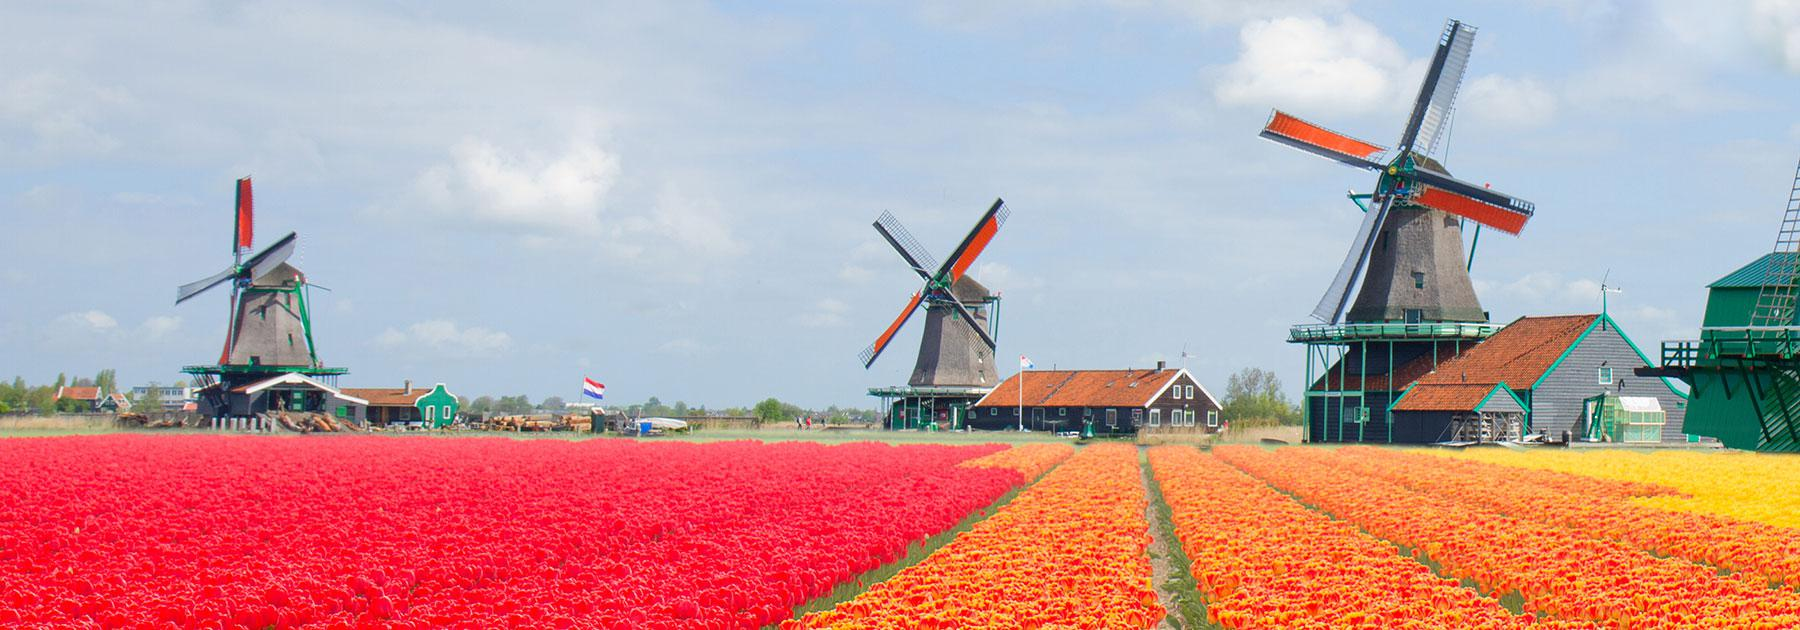 Netherlands Vacations with Airfare | Trip to Netherlands from go-today